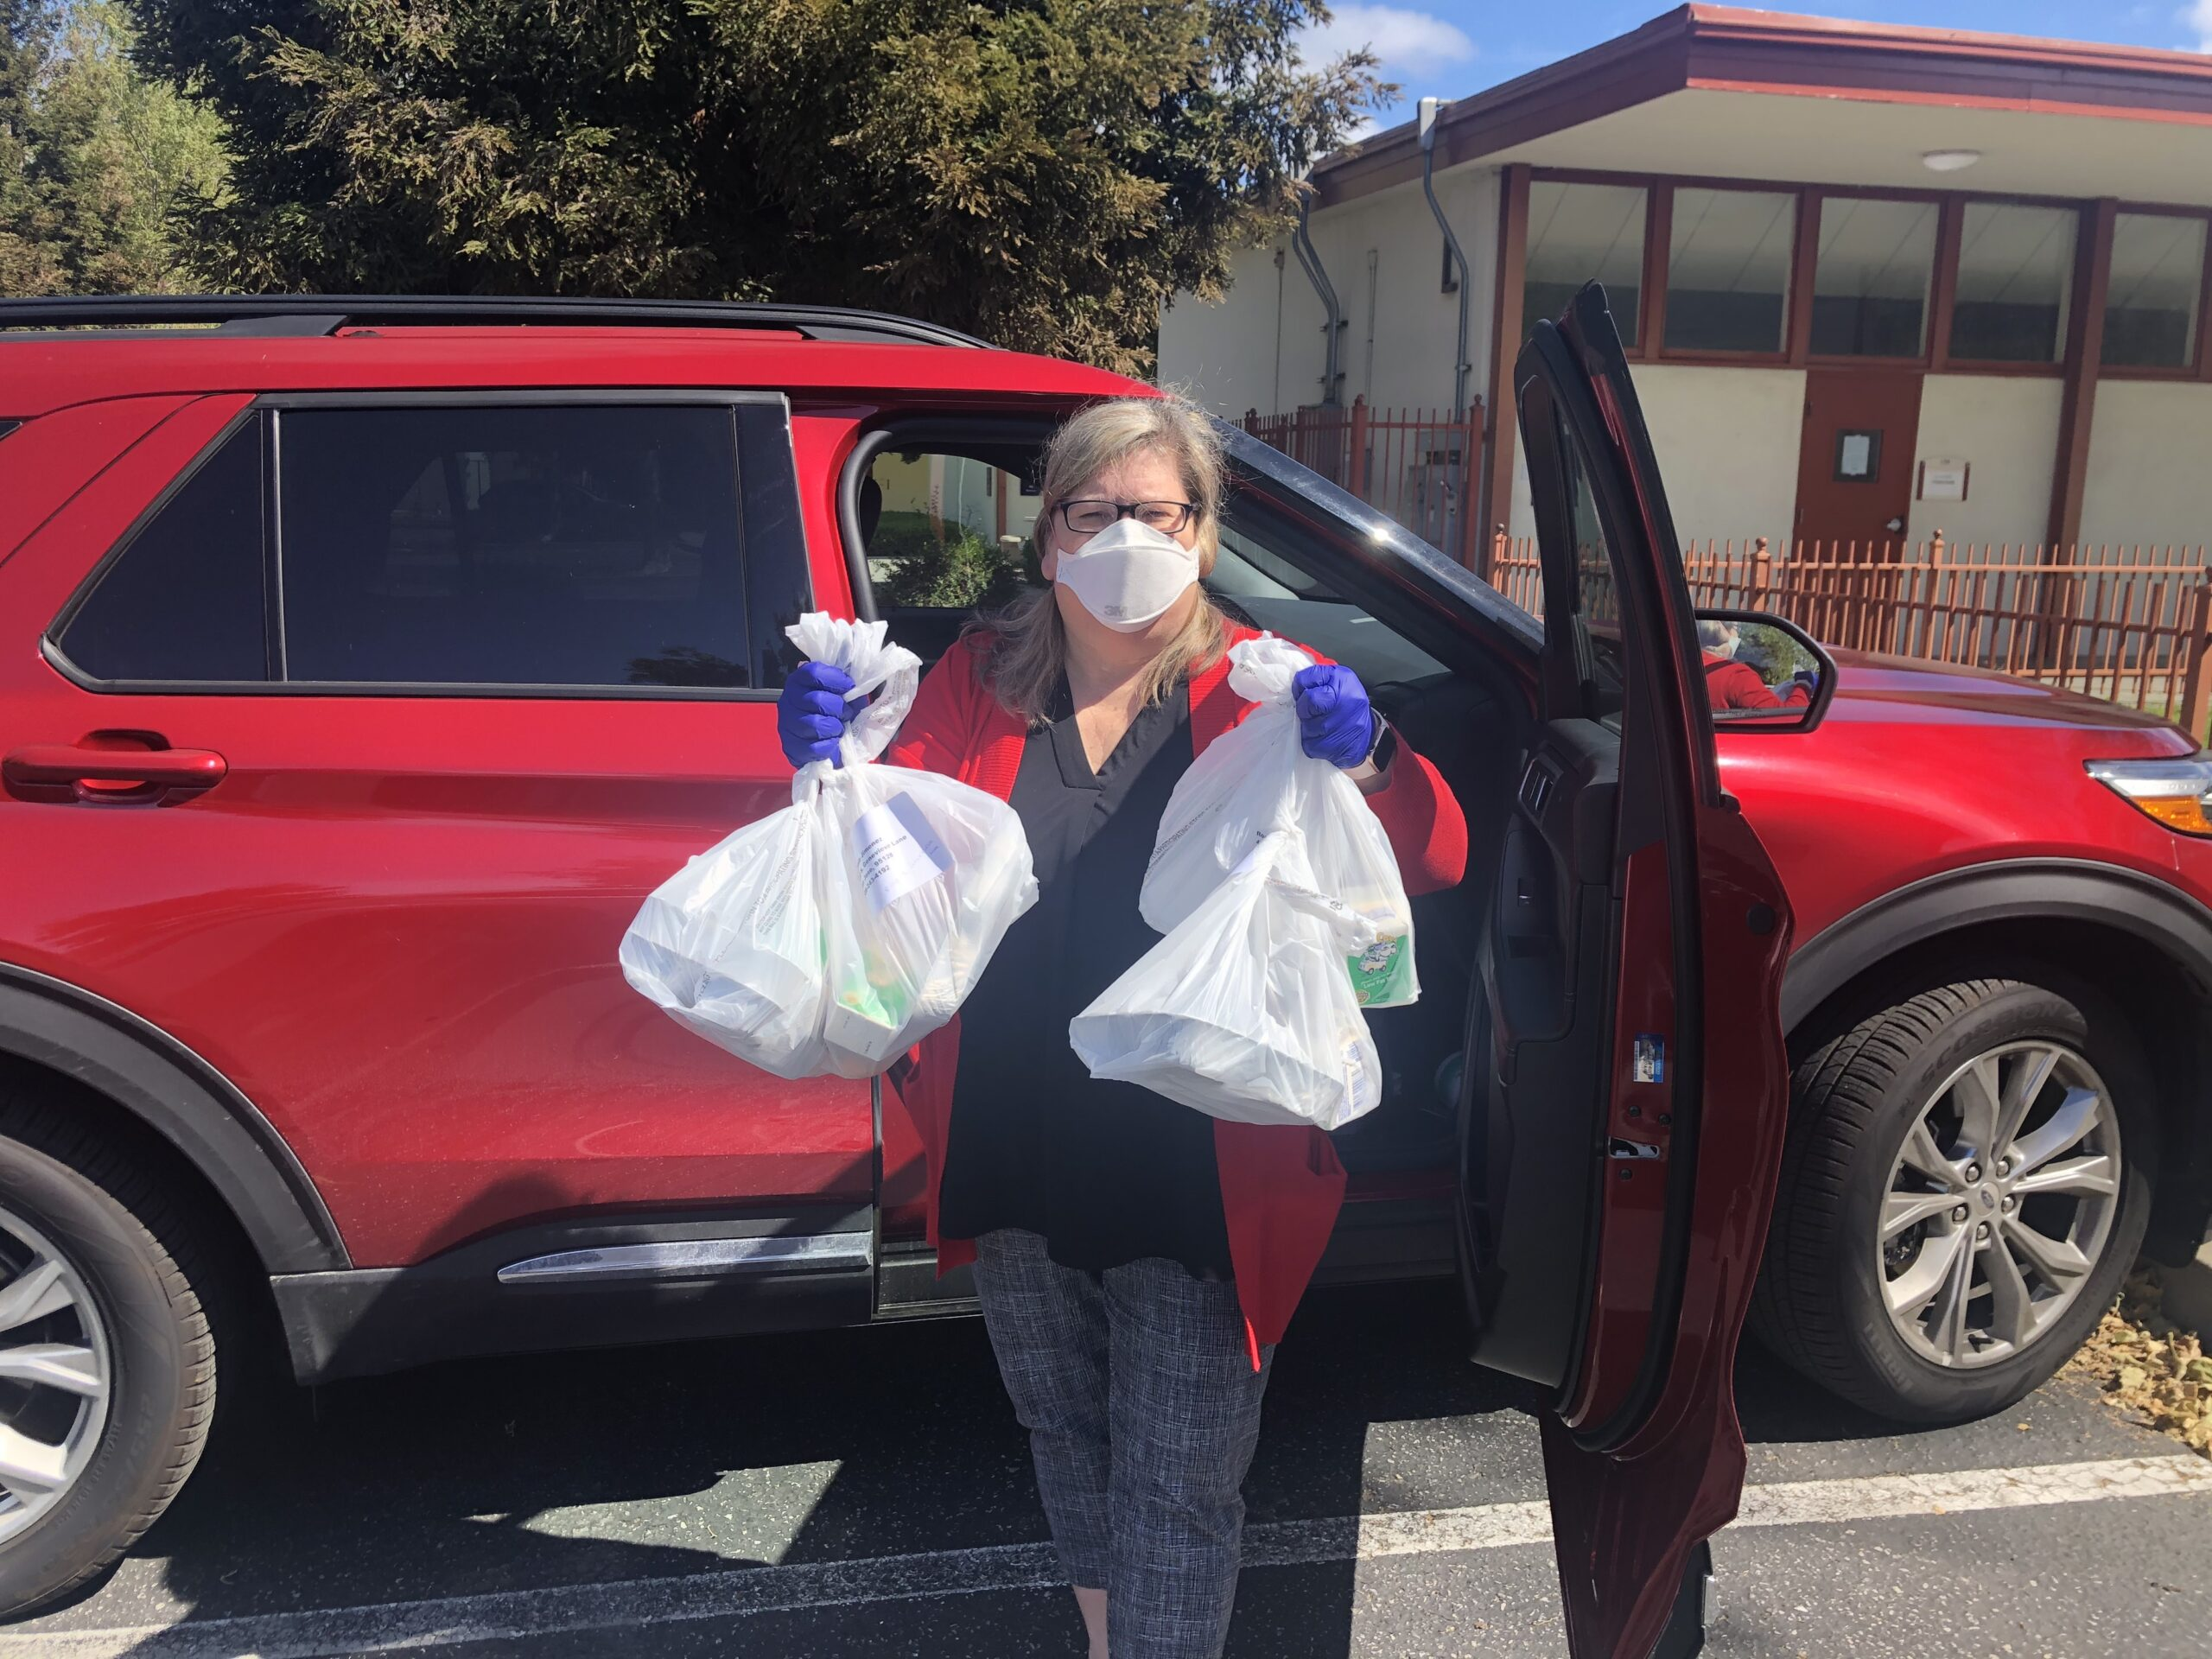 Anne delivering hot meals to seniors during the shelter in place